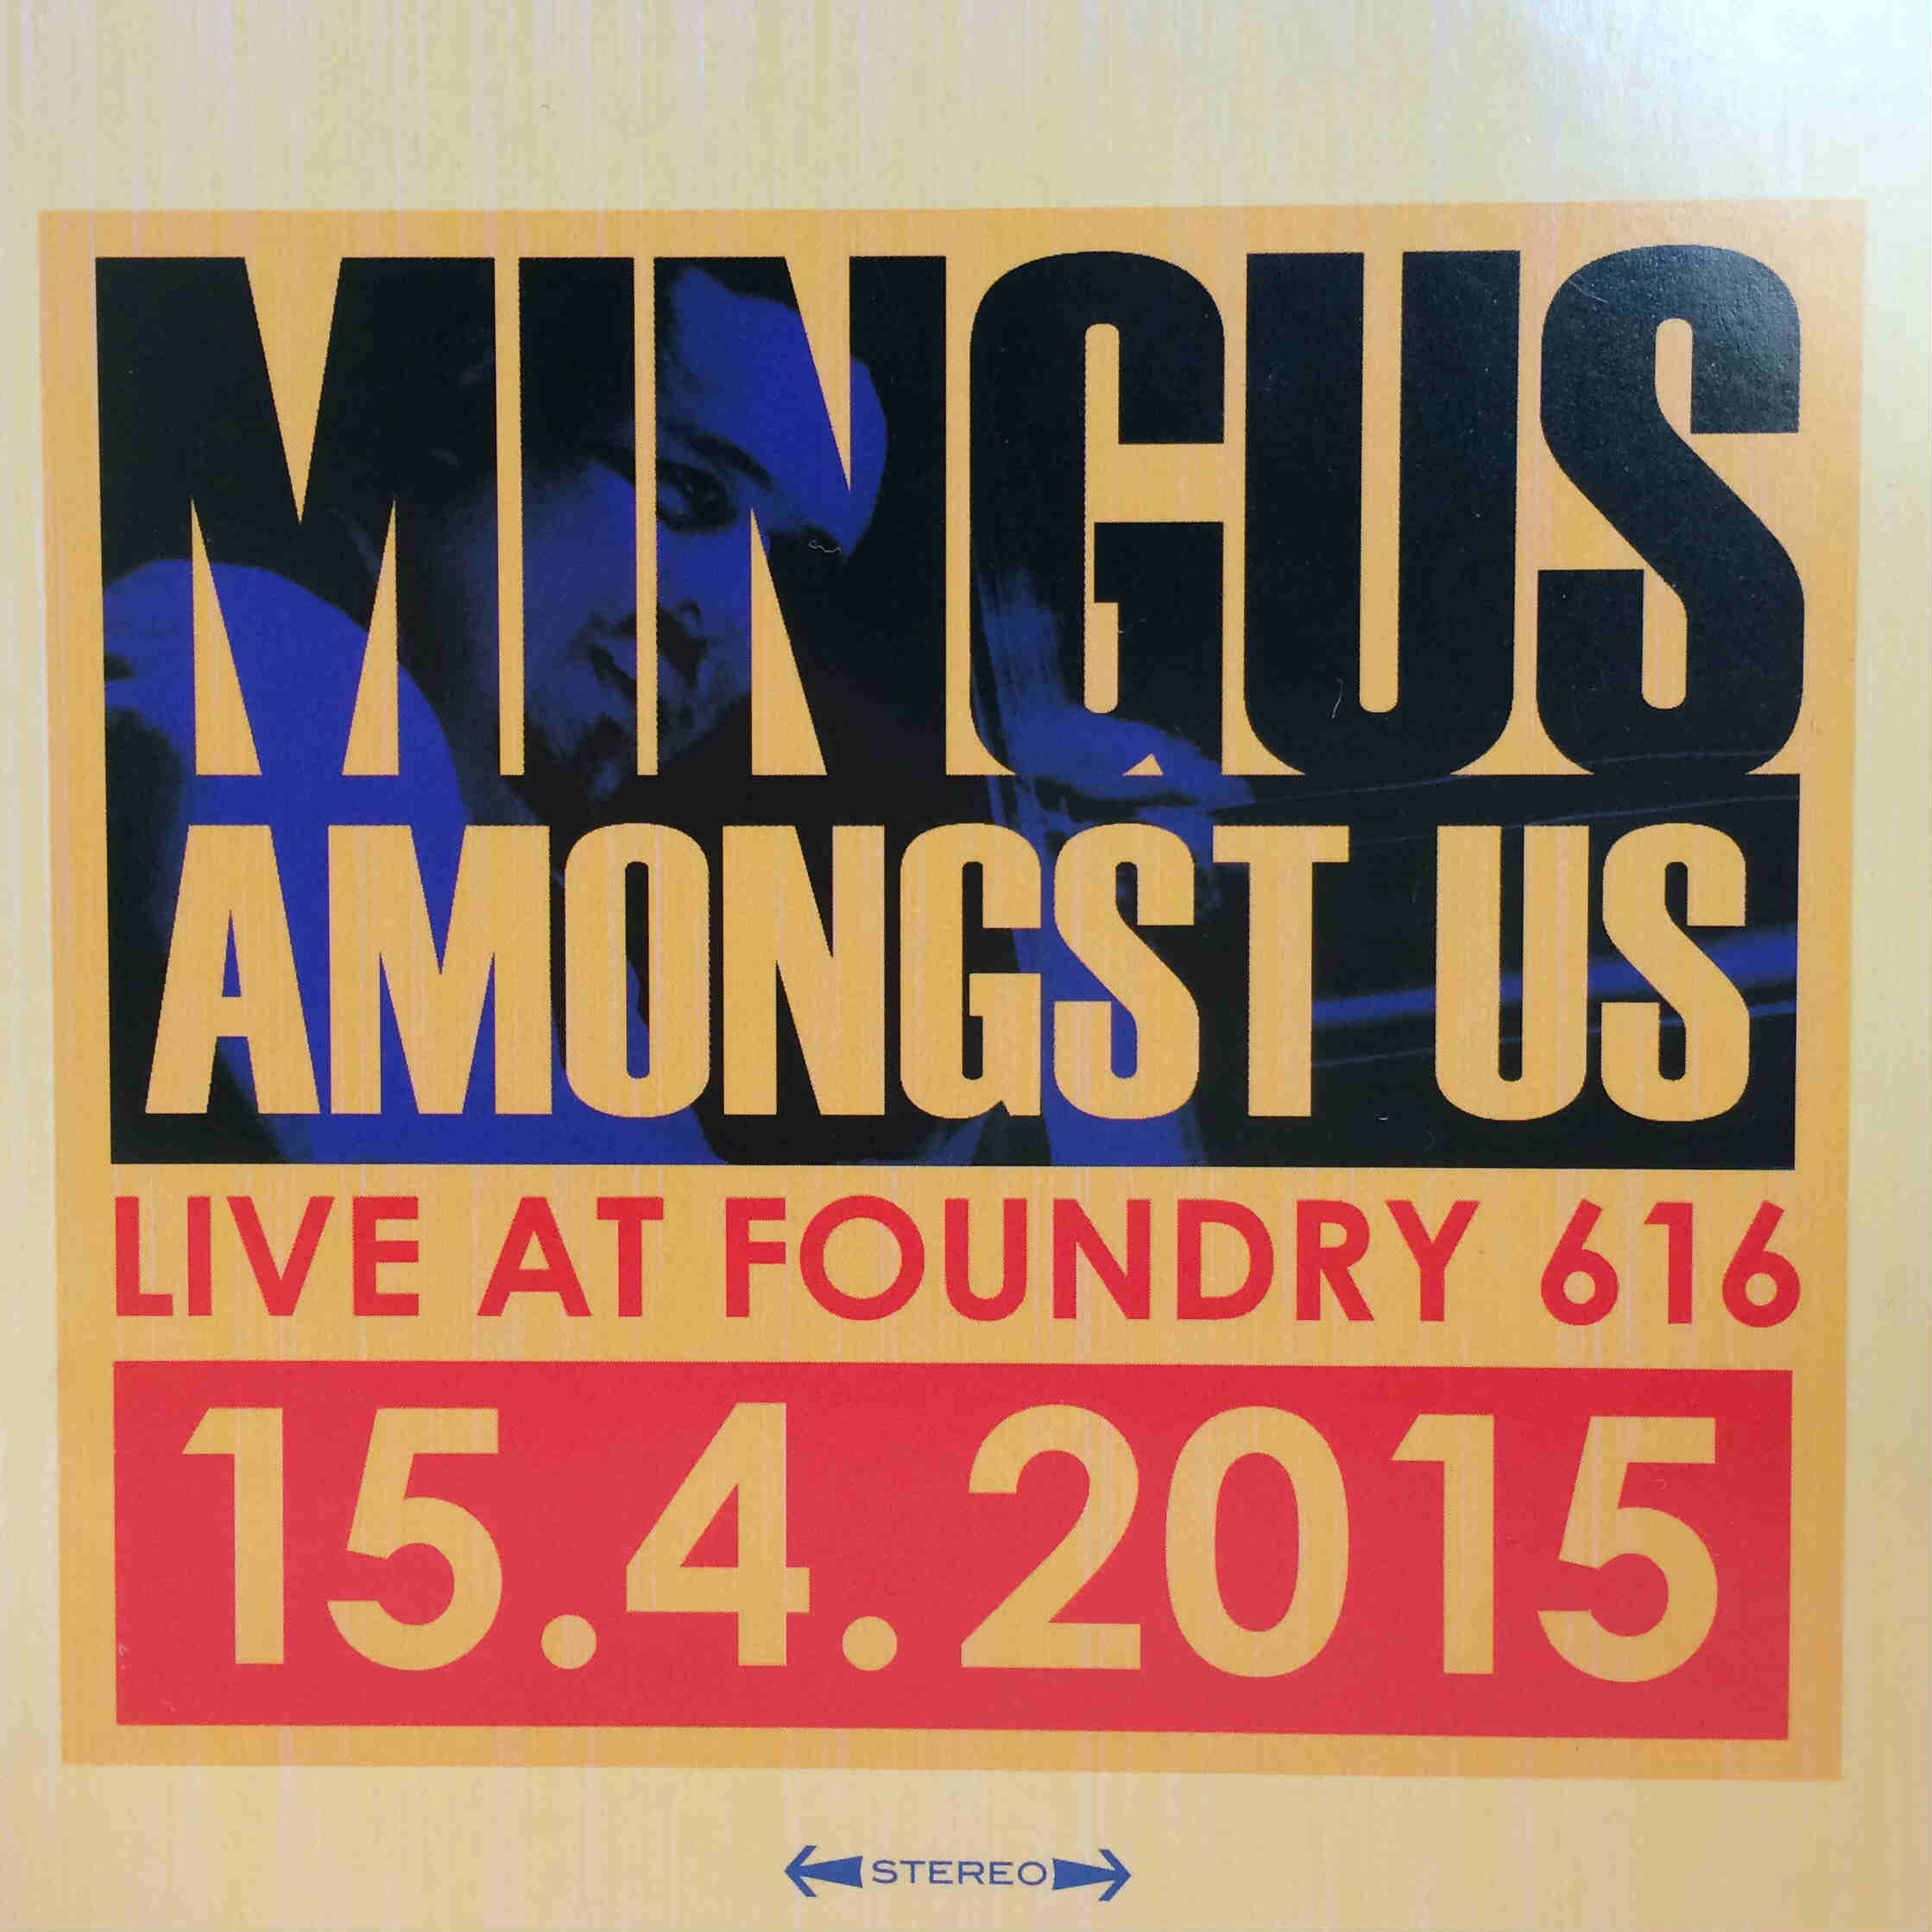 live-at-foundry-616.jpg